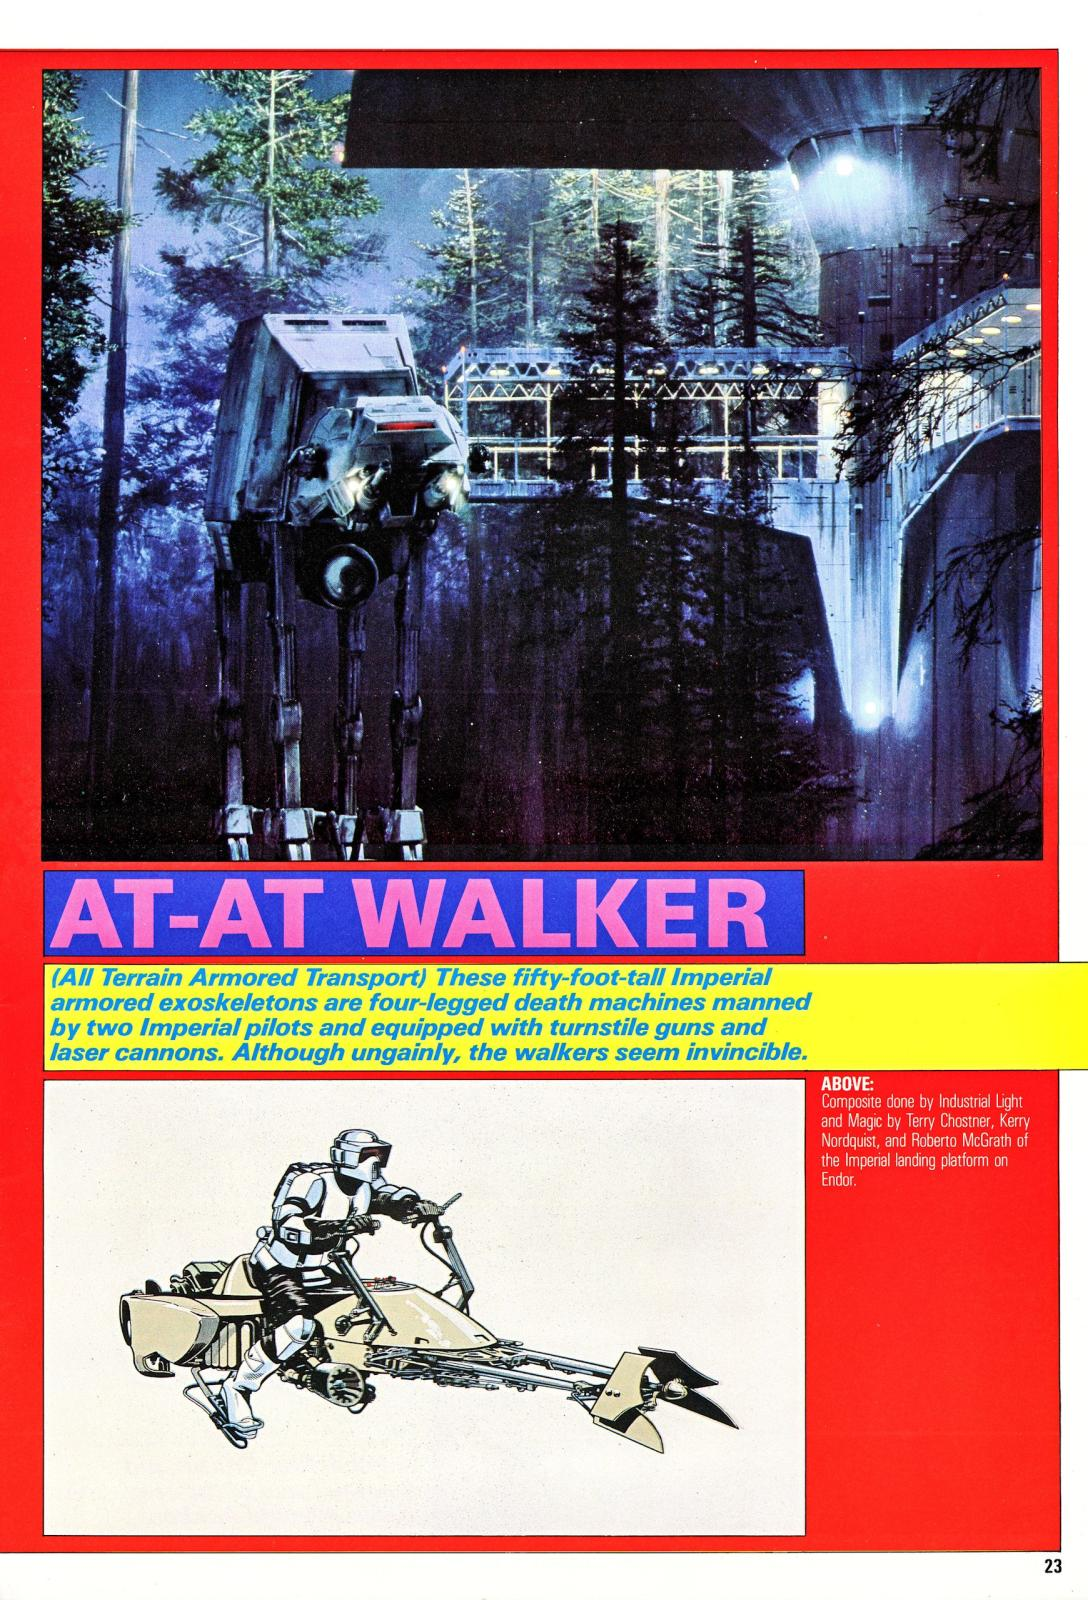 star wars return of the jedi compendium at-at endor 1983